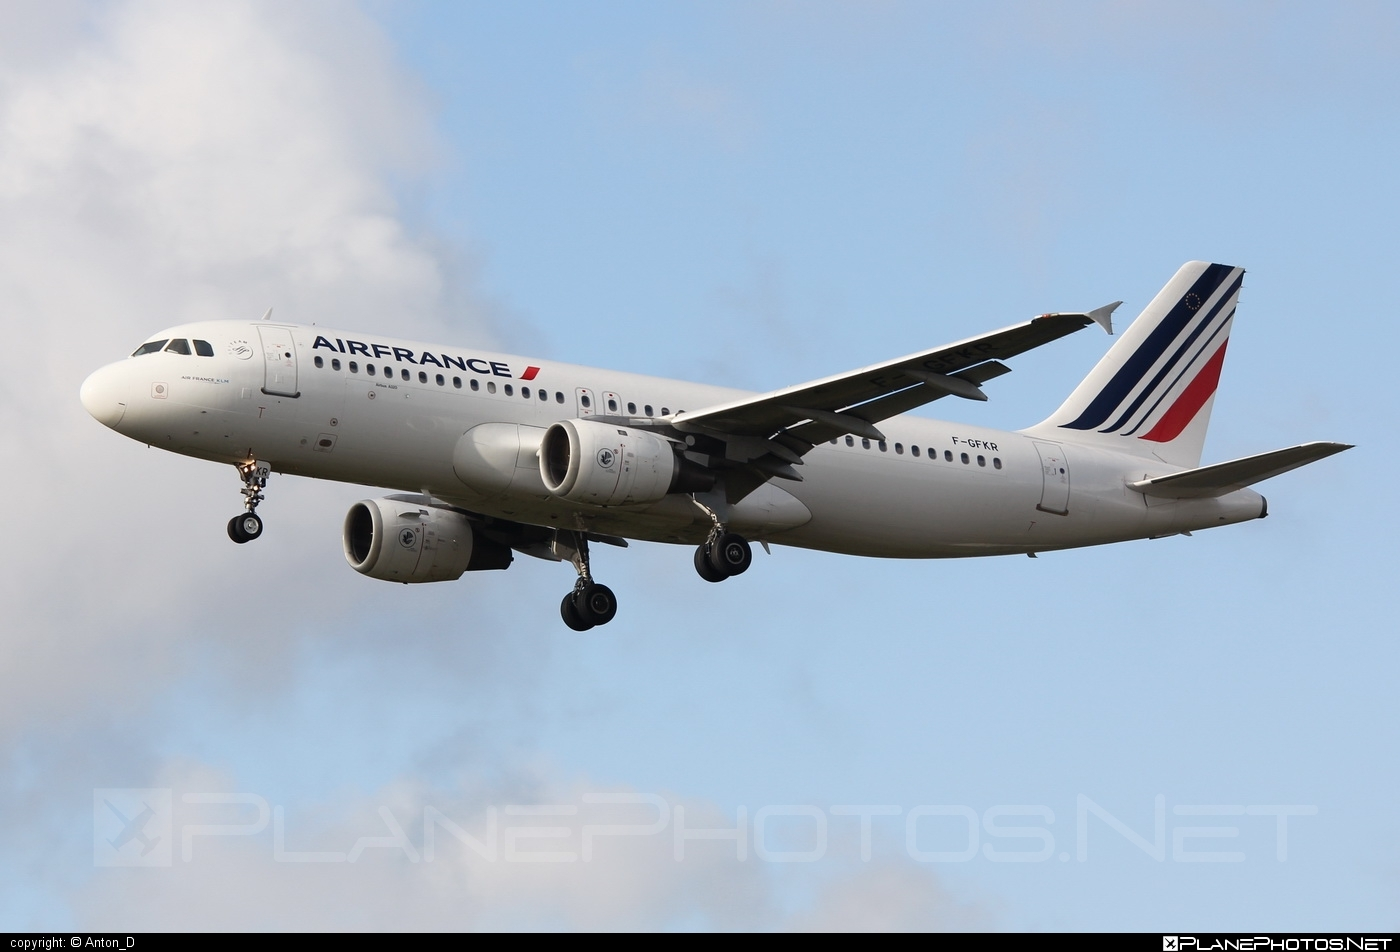 Airbus A320-211 - F-GFKR operated by Air France #a320 #a320family #airbus #airbus320 #airfrance